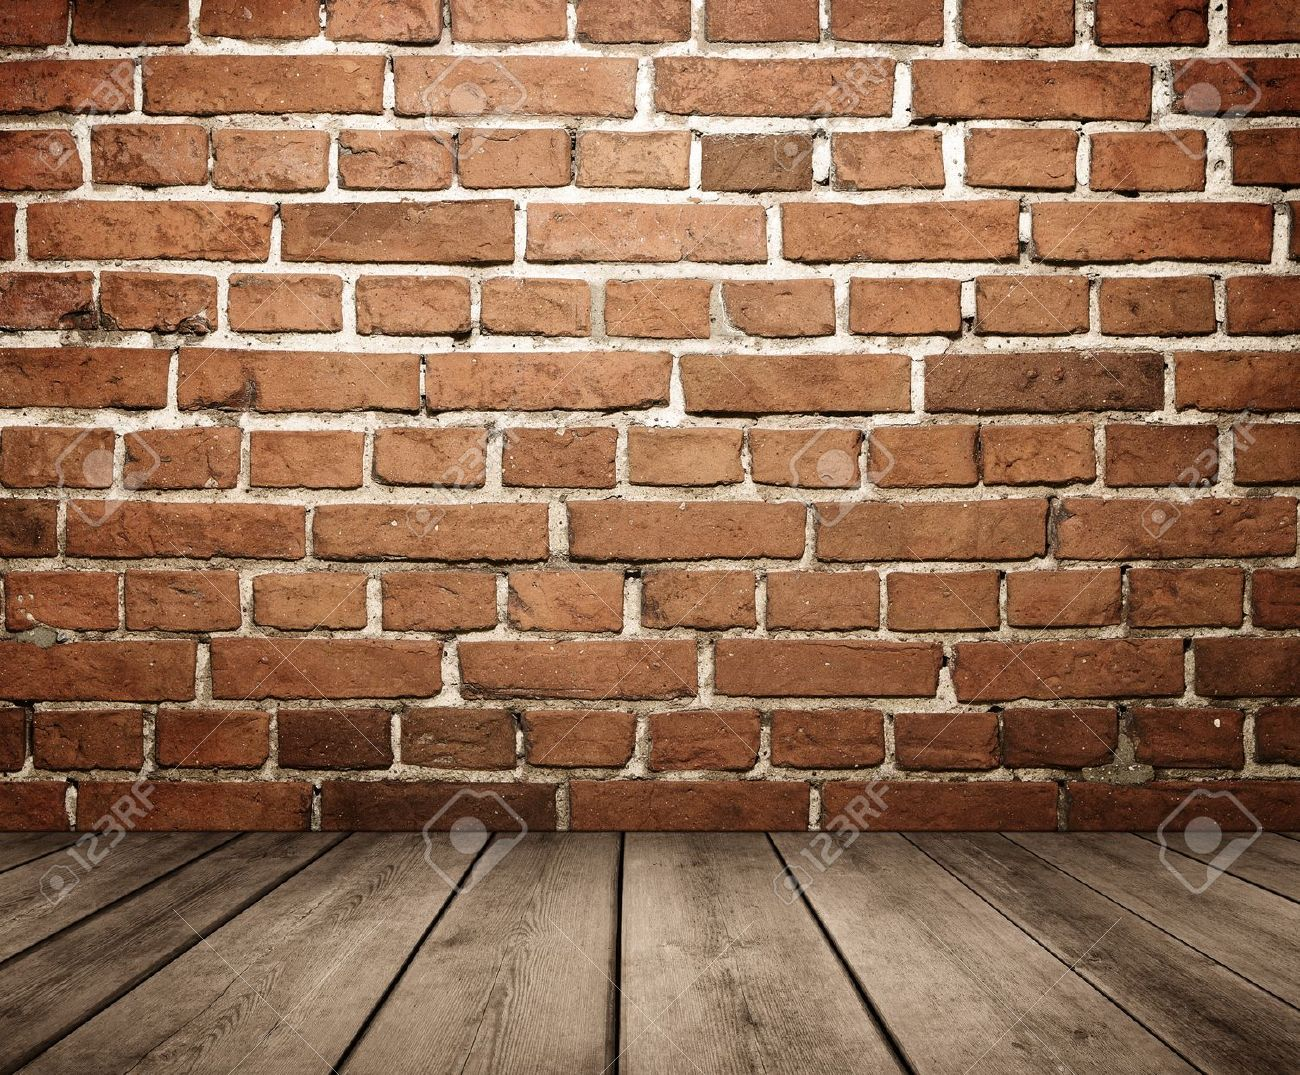 Grunge empty interior with brick wall and wooden floor Stock Photo - 16246245